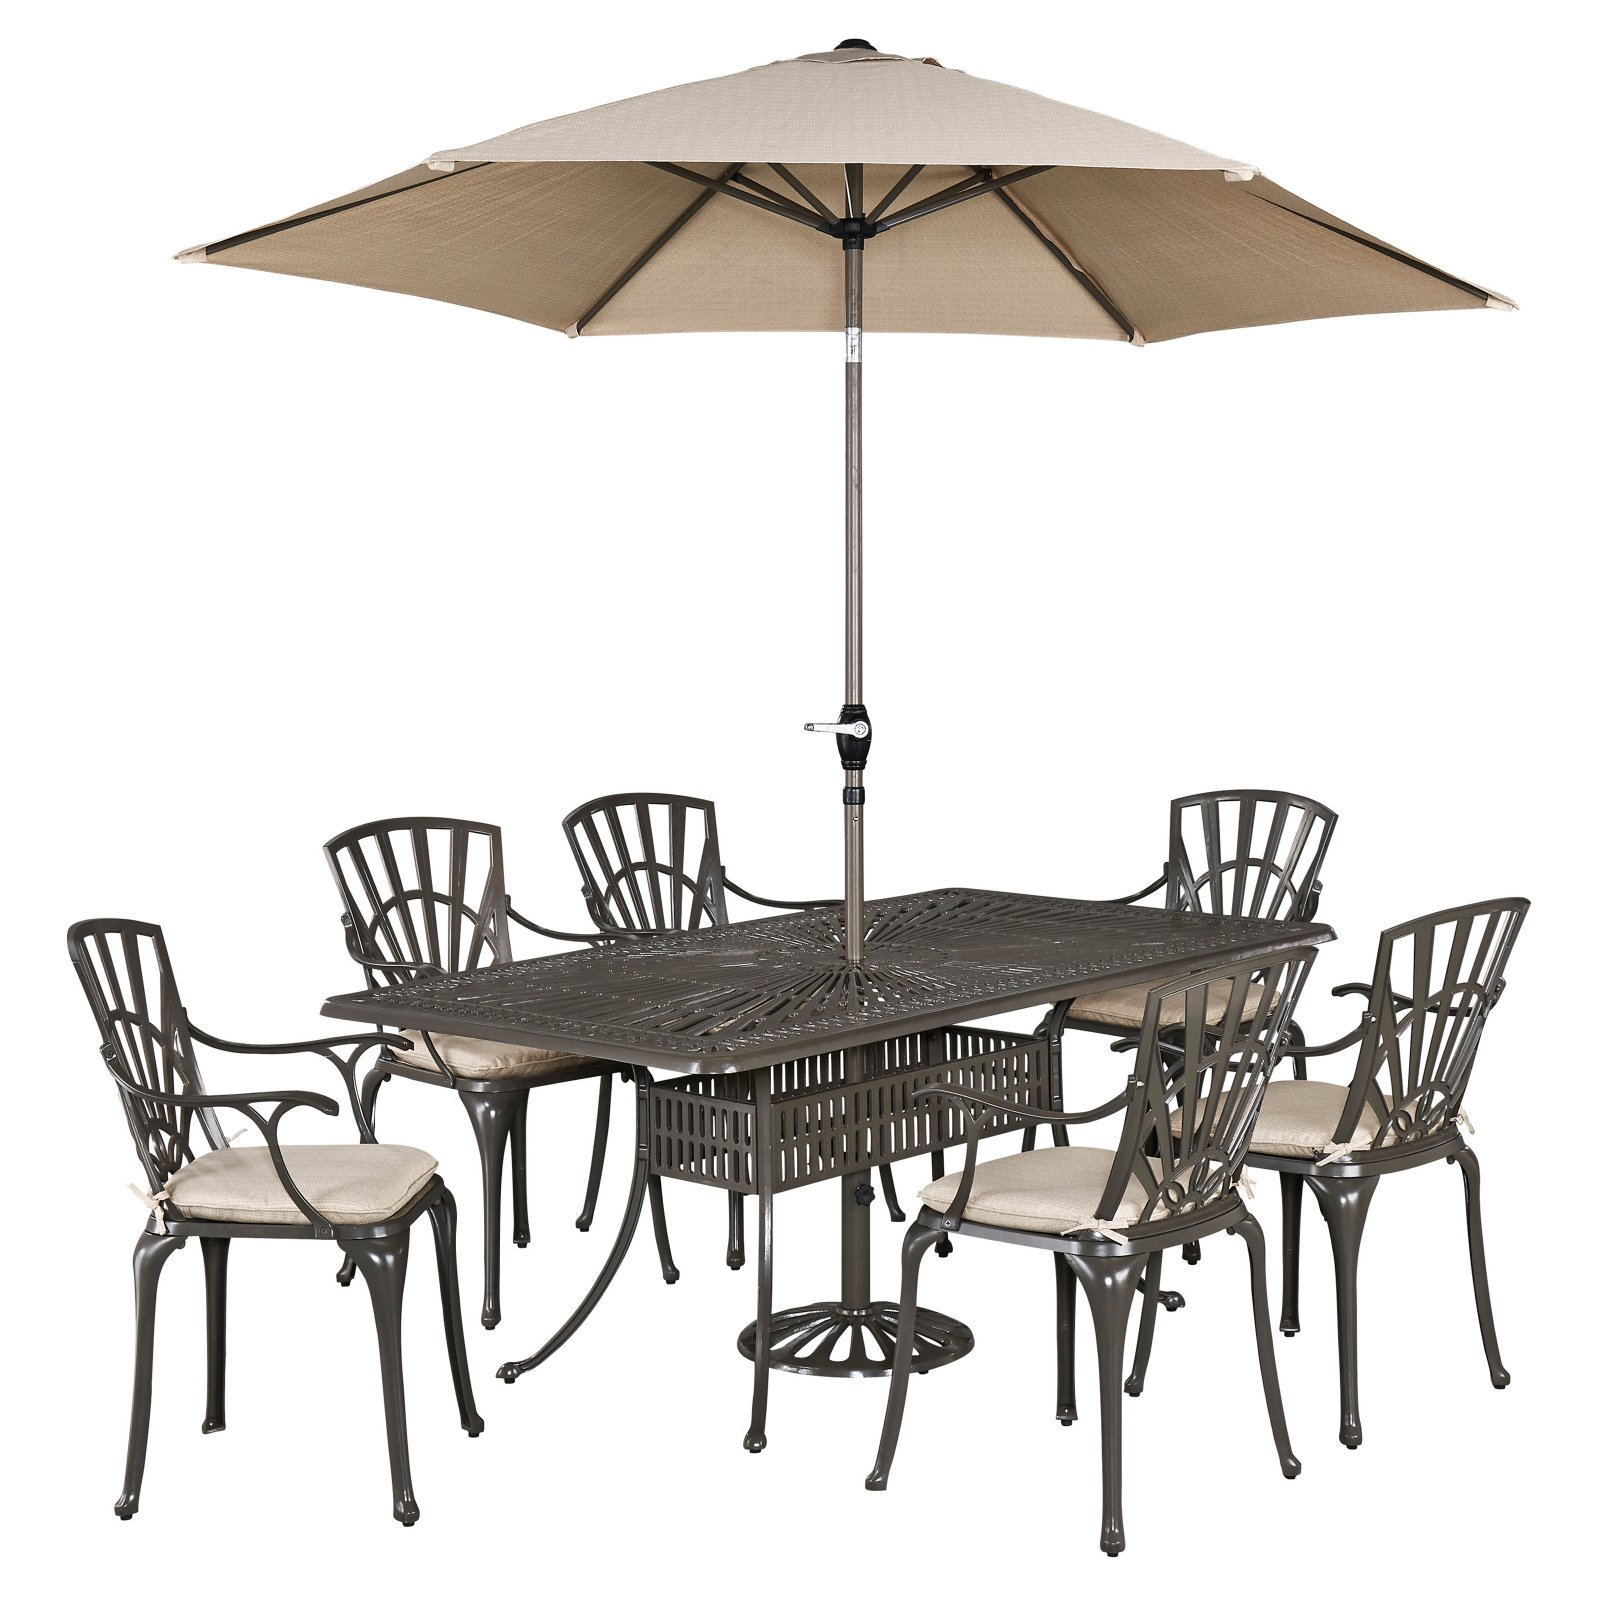 Home Styles Largo Cast Aluminum 7 Piece Rectangular Patio Dining Set with Optional Umbrella and Cushions